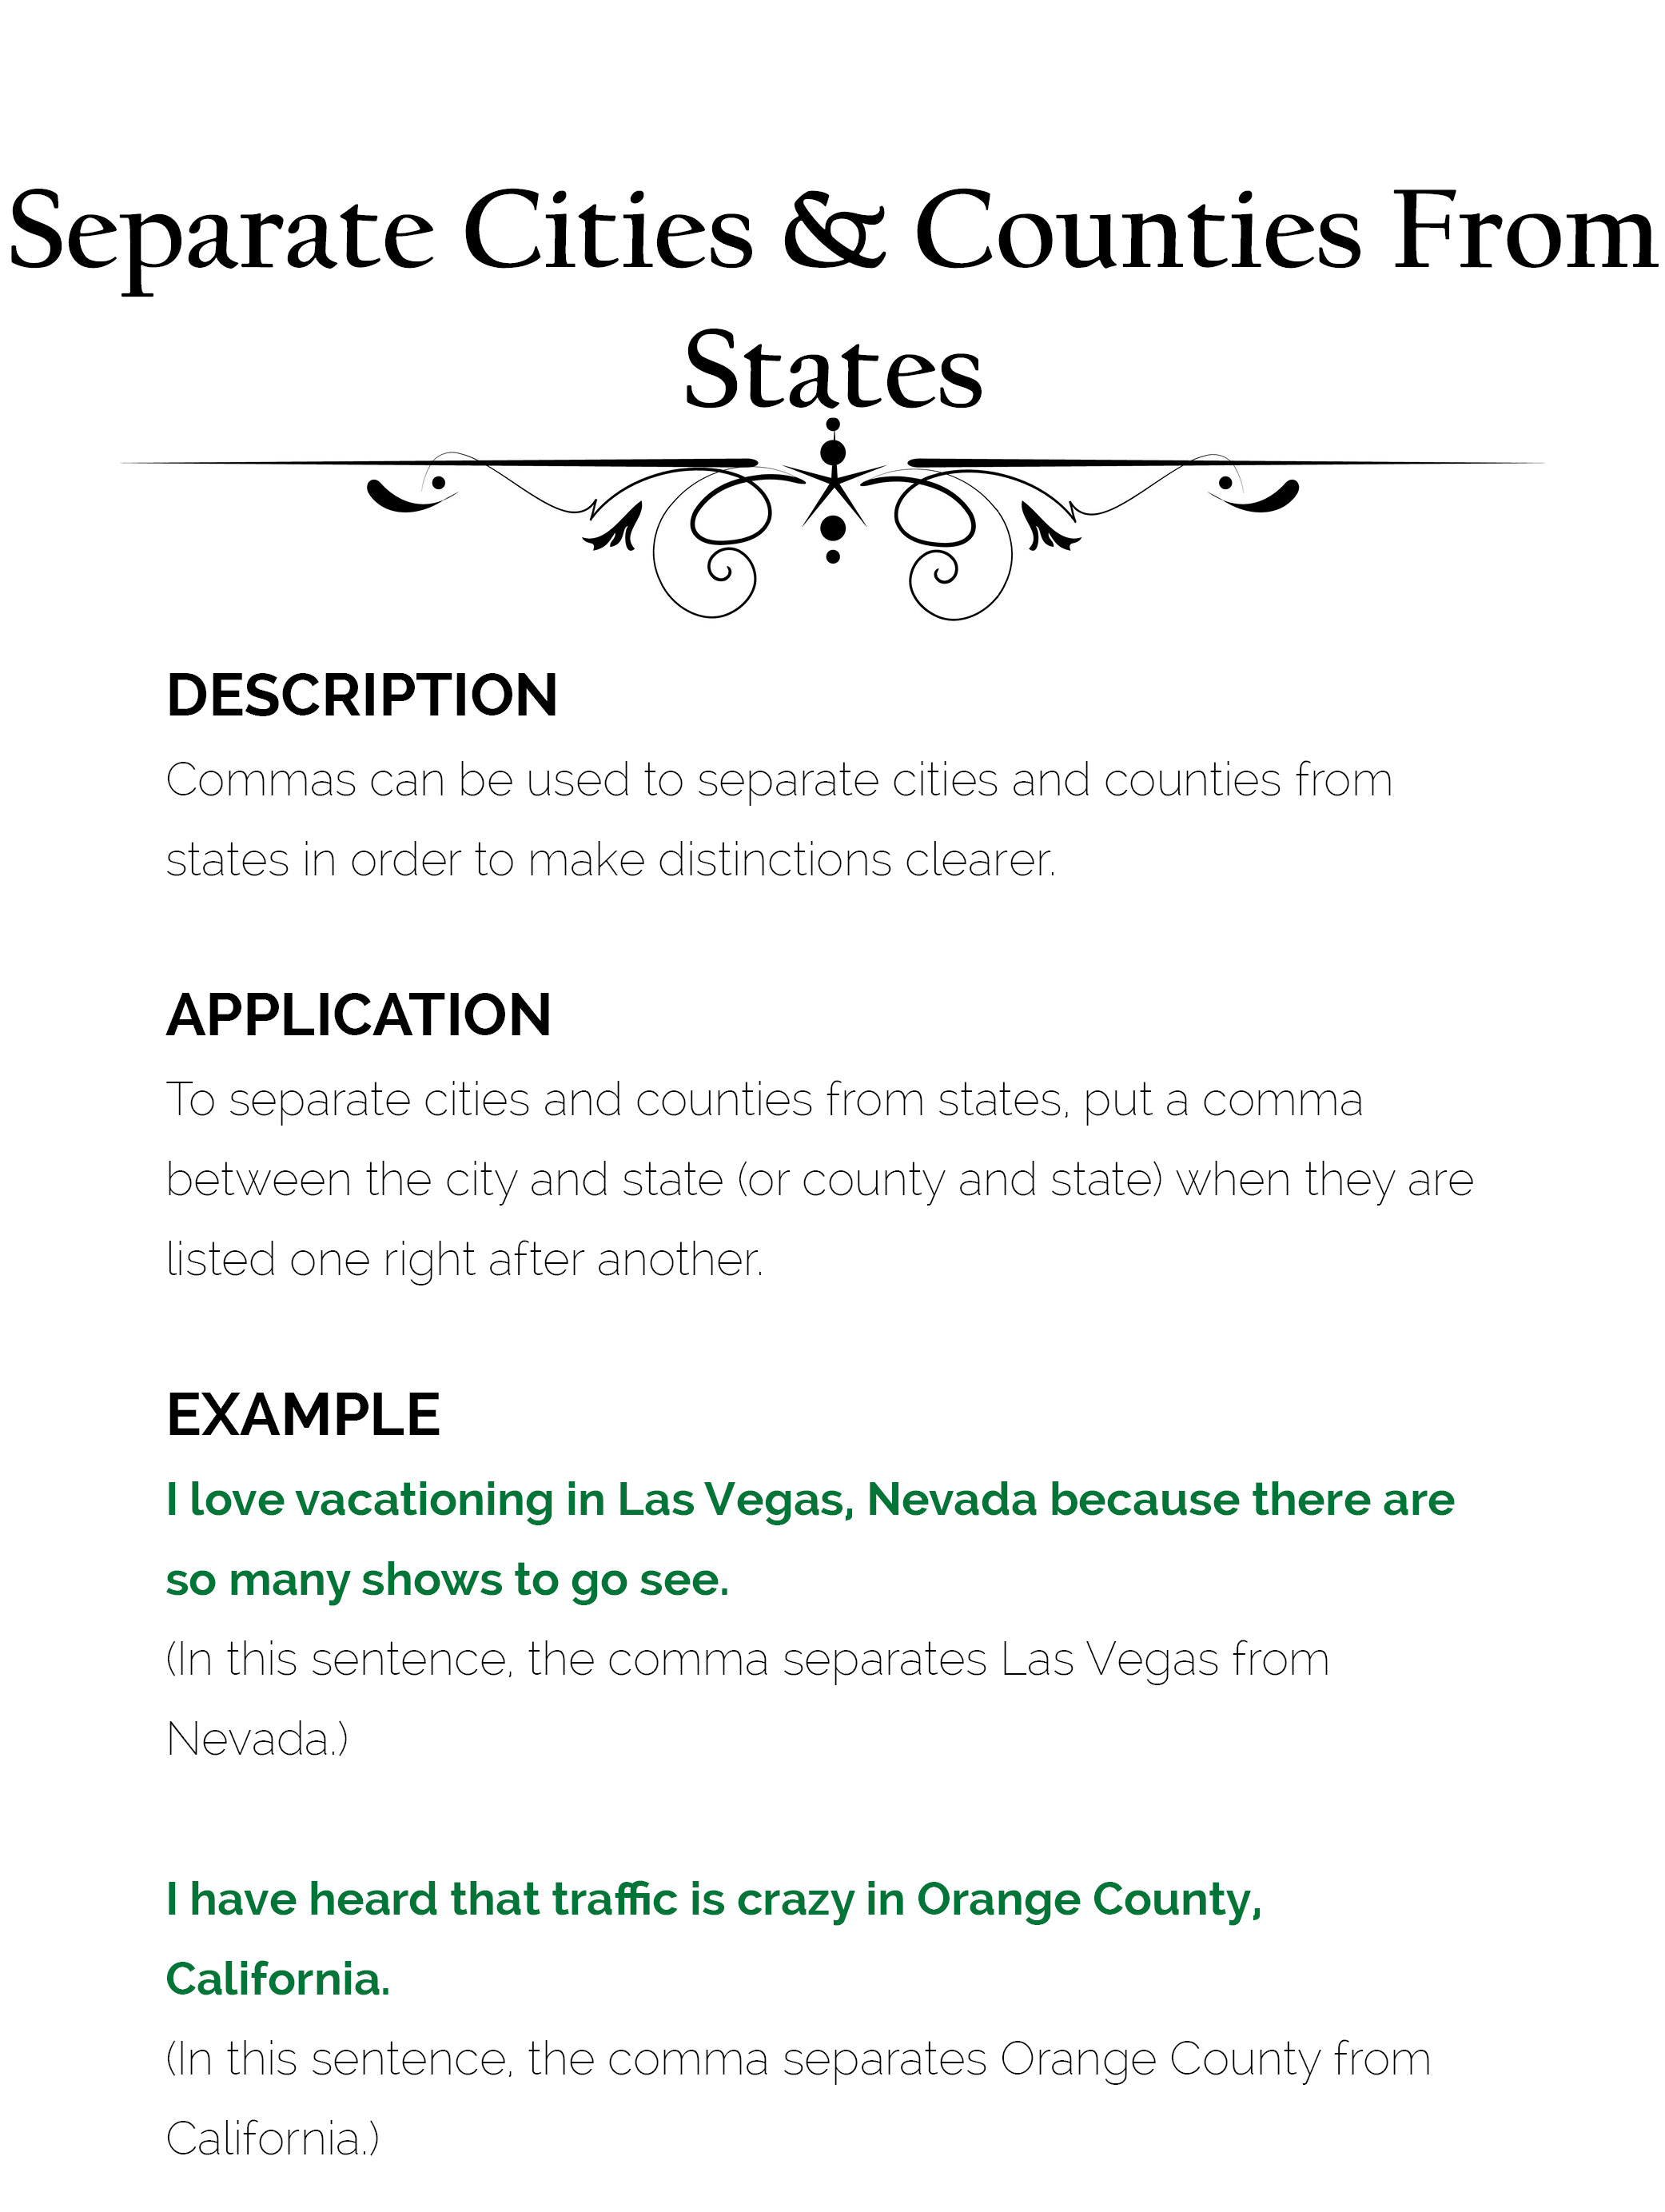 comma-use-12-separates-cities-and-countries-from-states